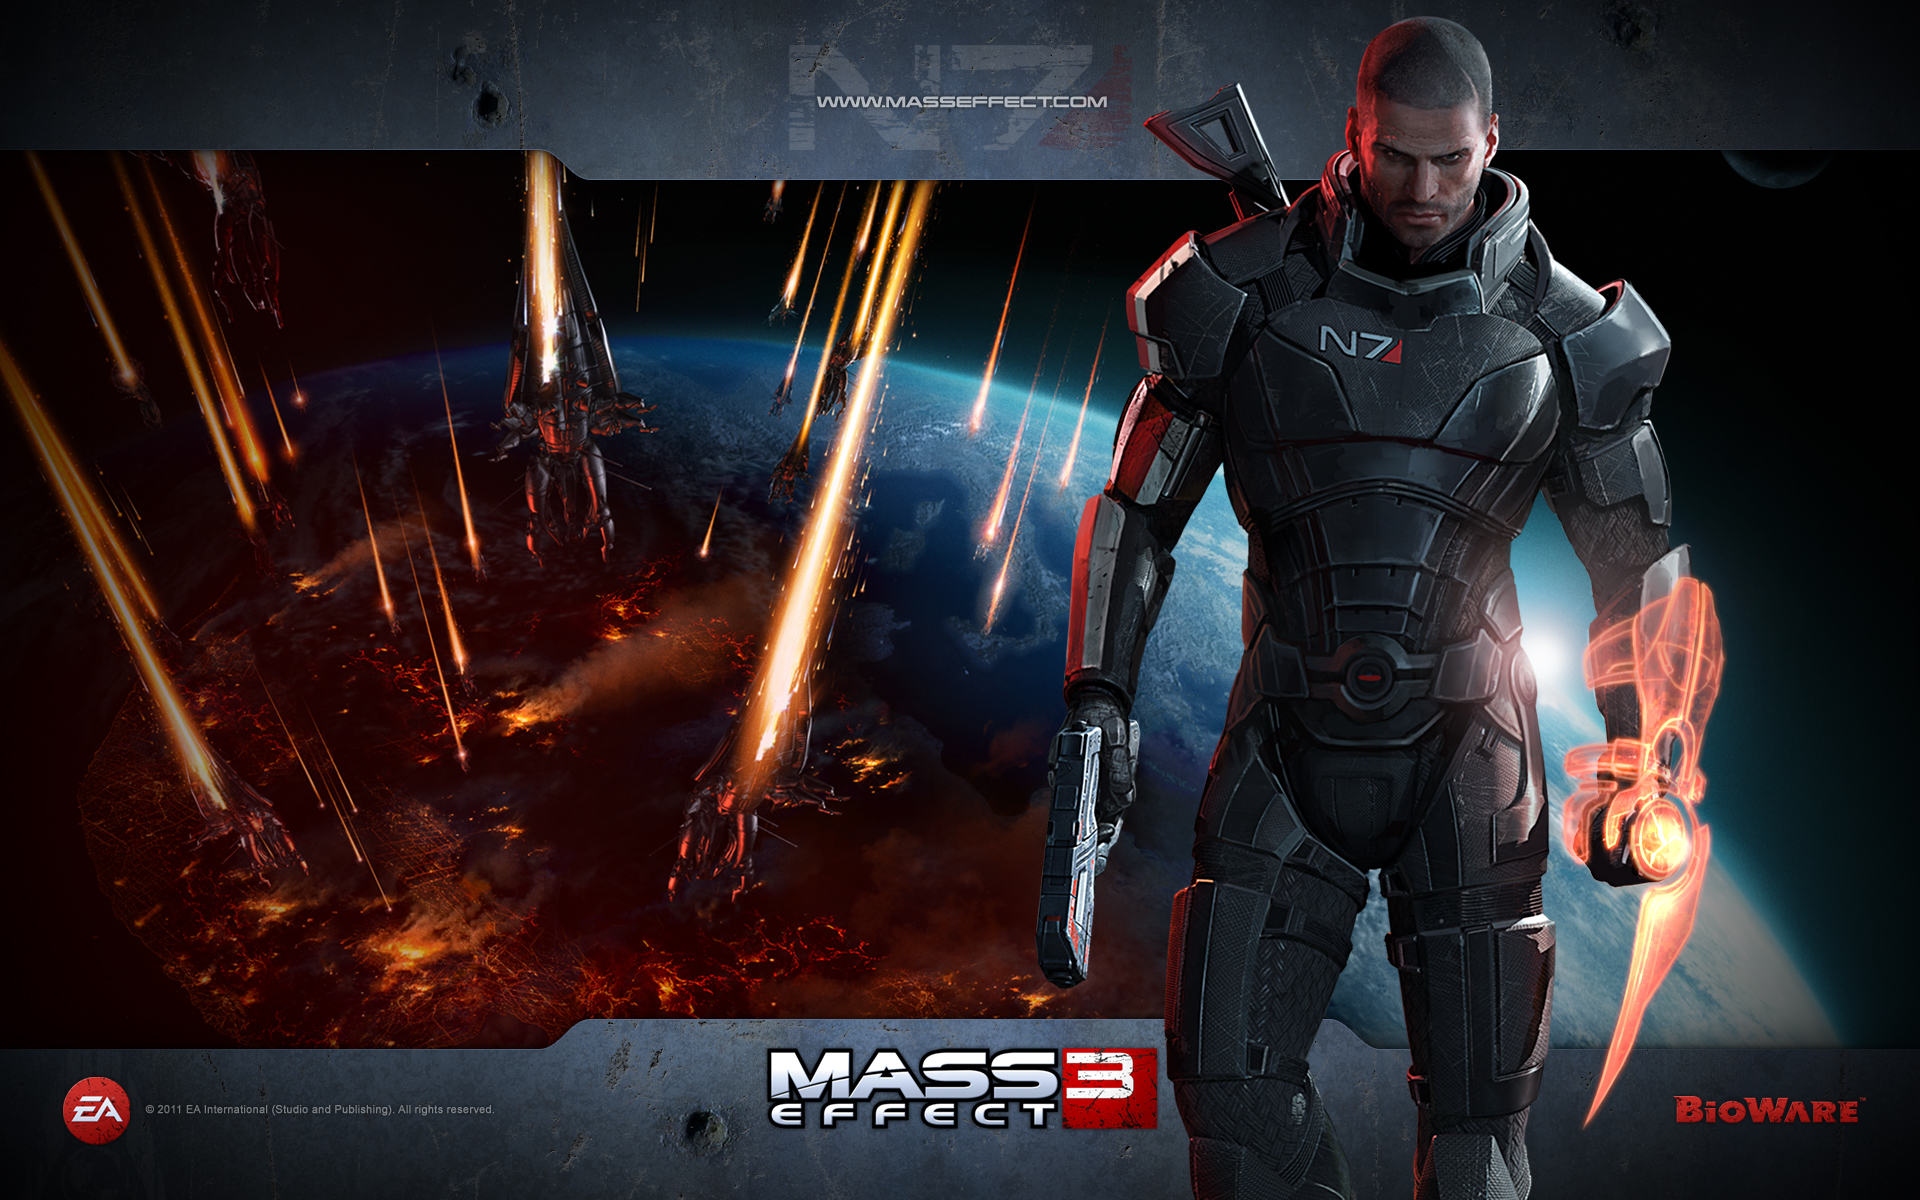 2012 Mass Effect 3 Game 503.81 Kb